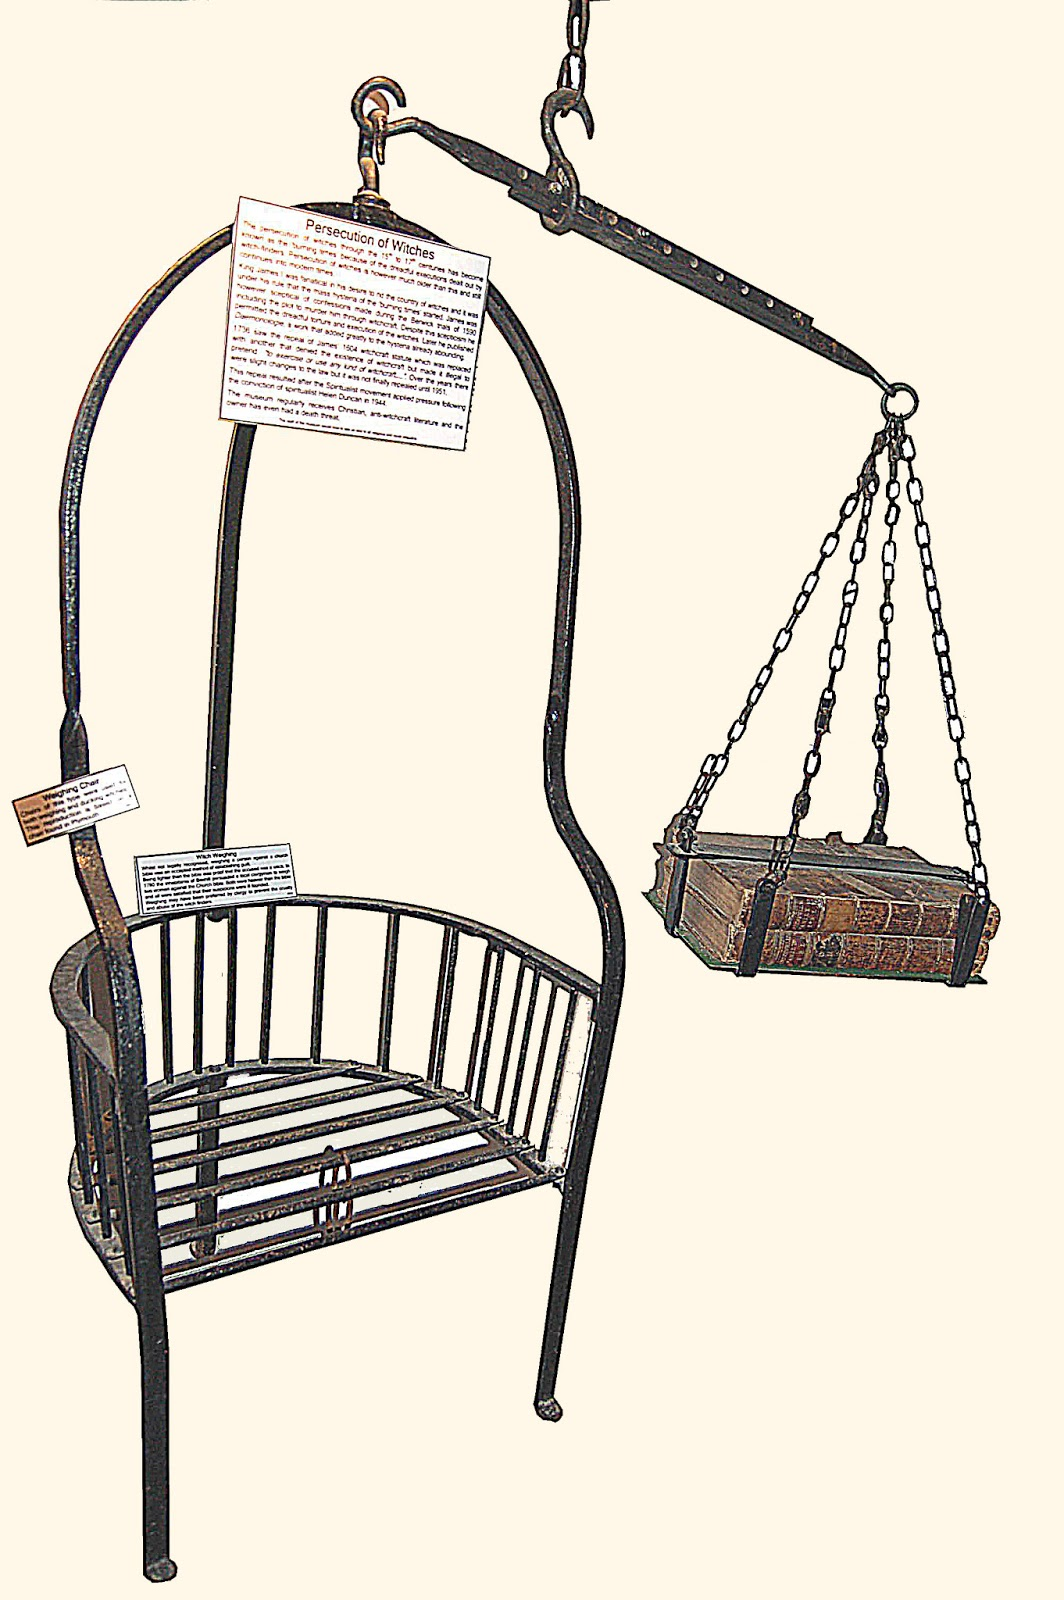 Chair and Bibles